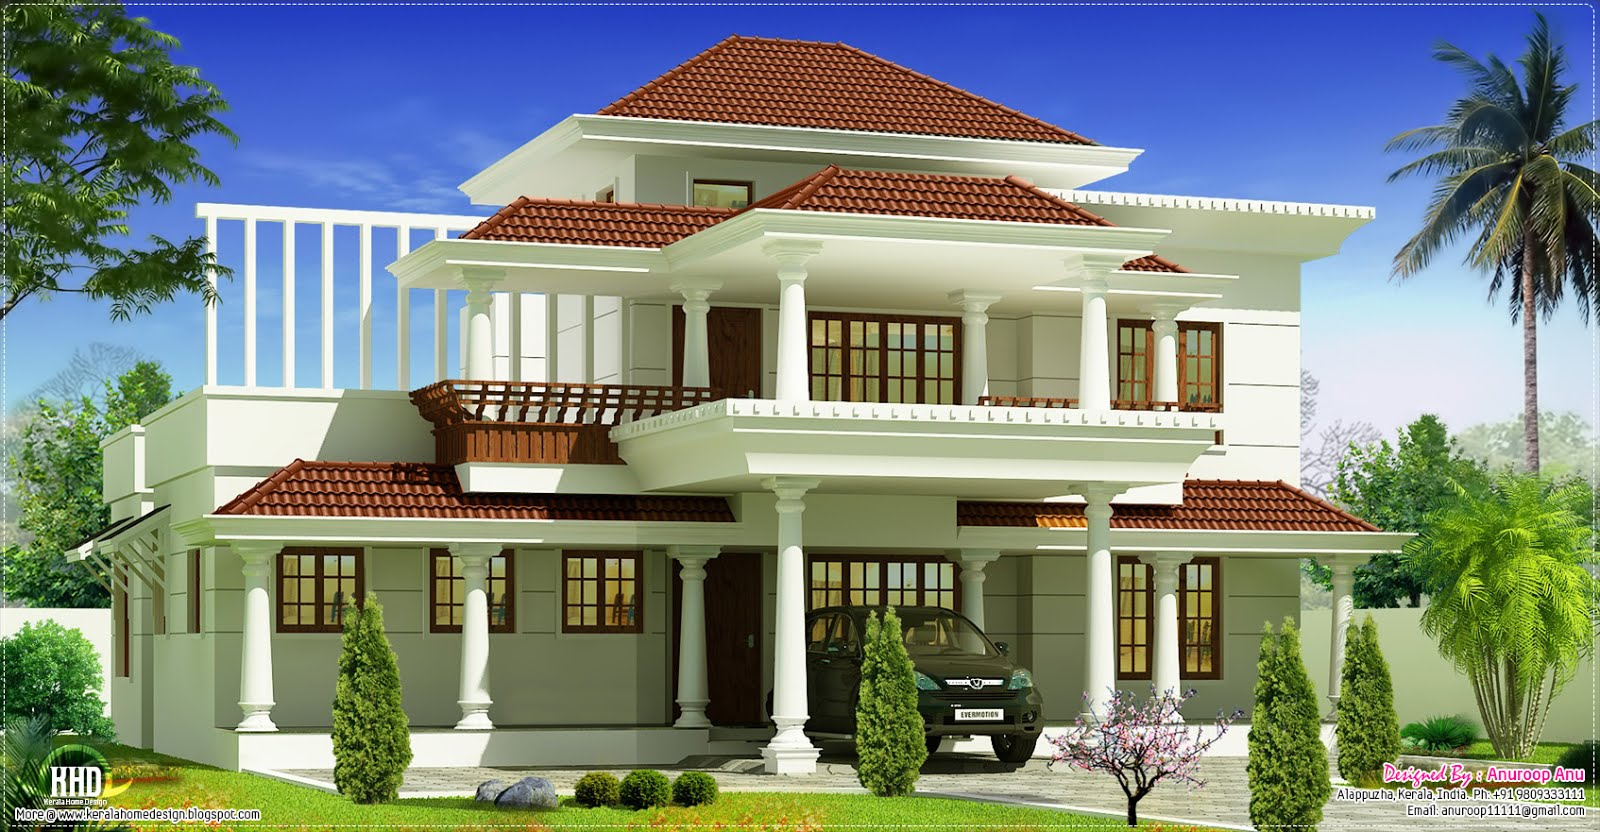 My dream house rublevka where russia s superelite live for Dream home kerala